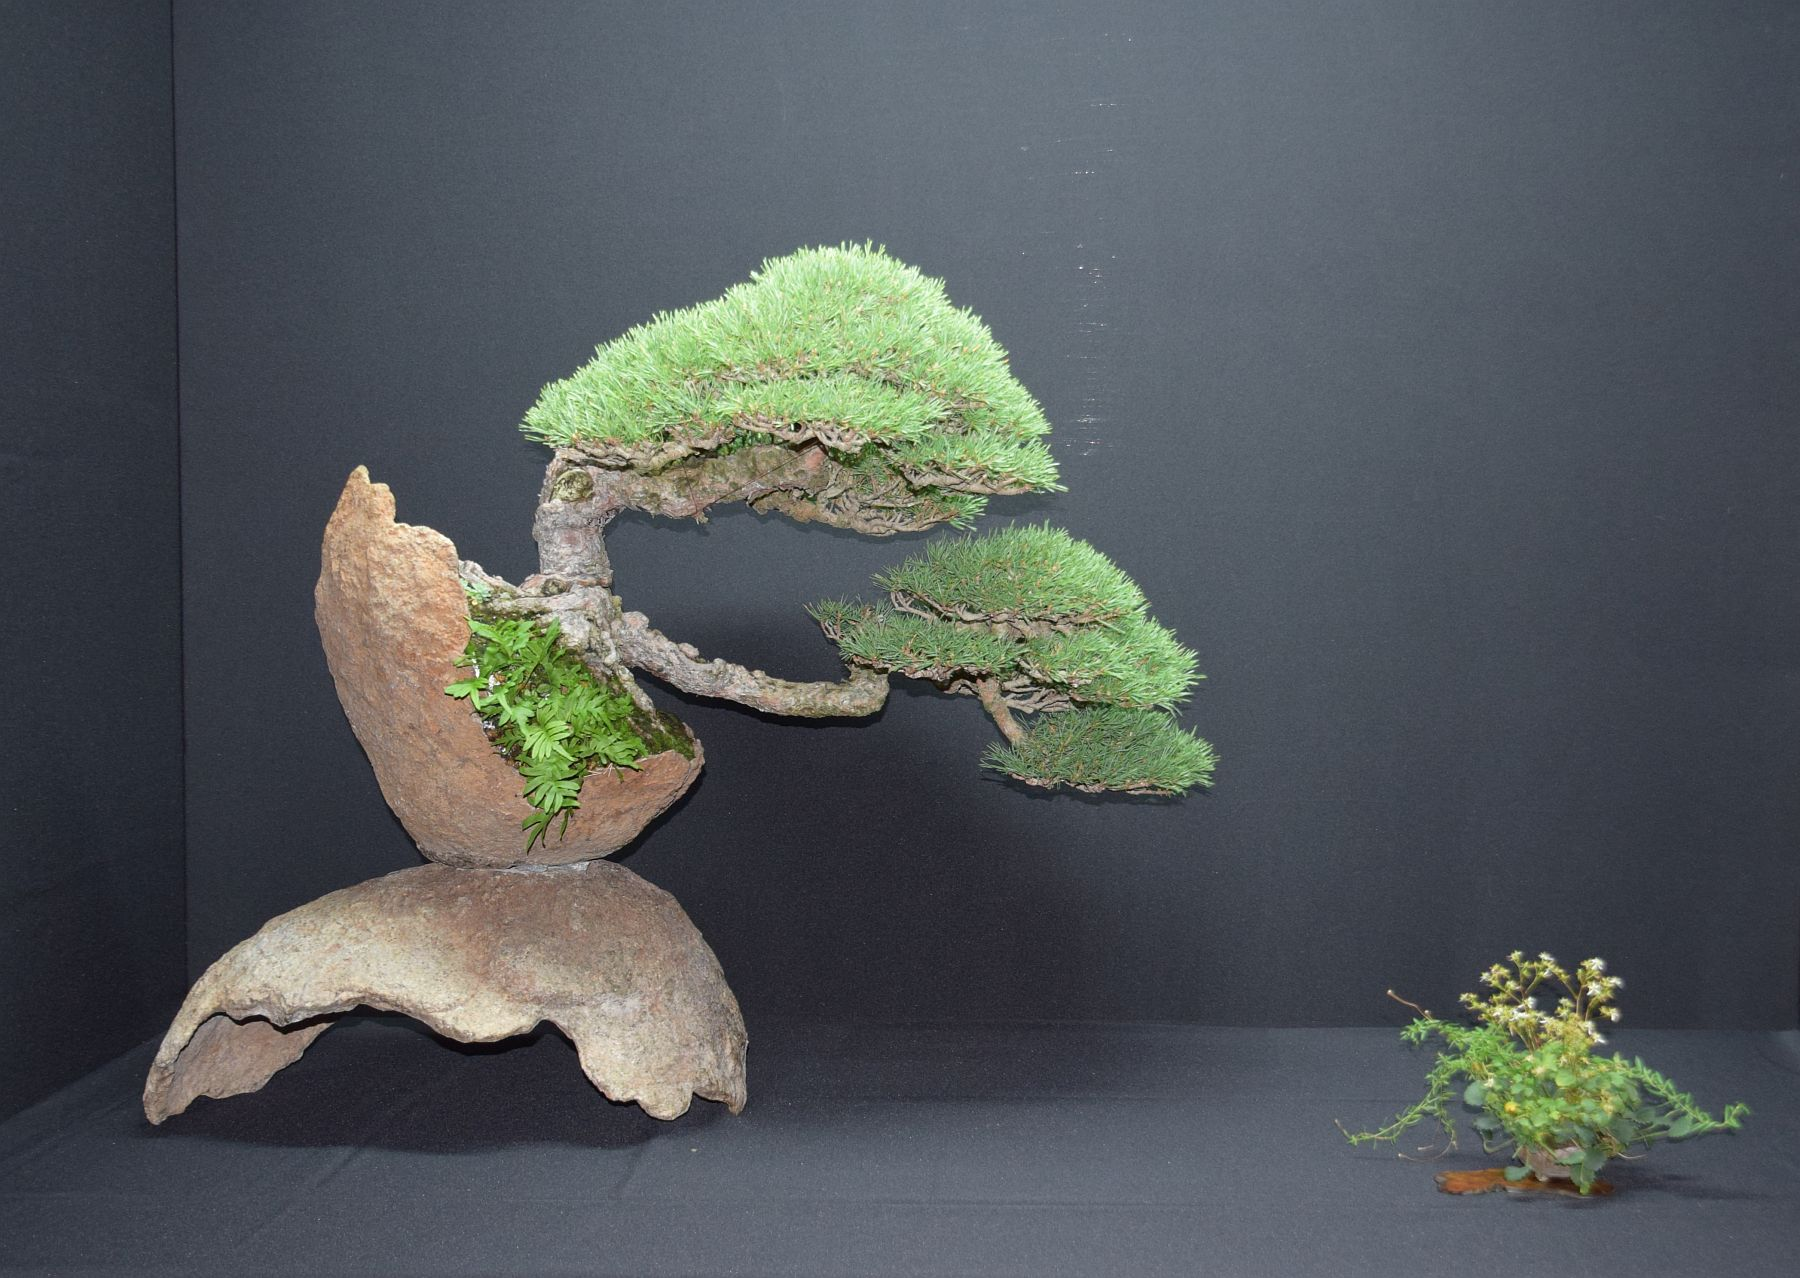 bonsai-museum-luis-vallejo-006